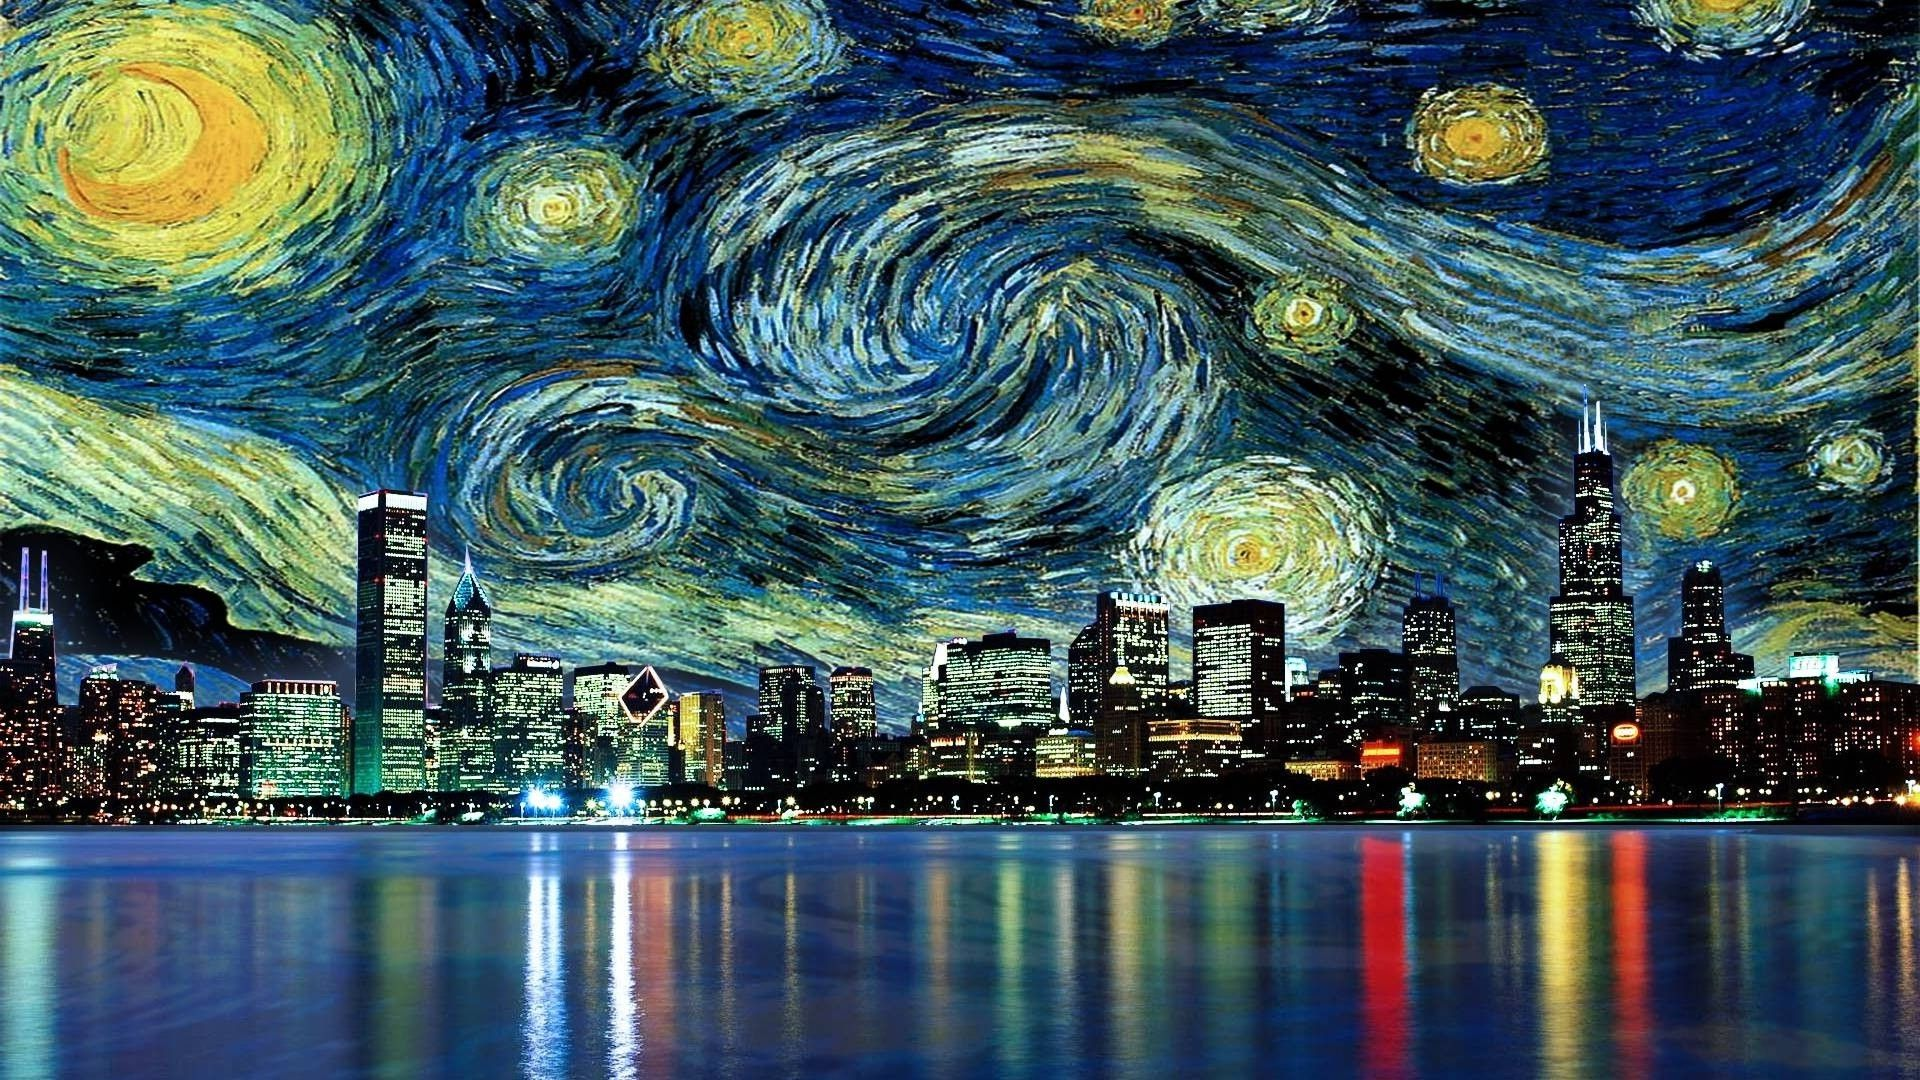 Vincent Van Gogh The Starry Night Free Wallpapers HD